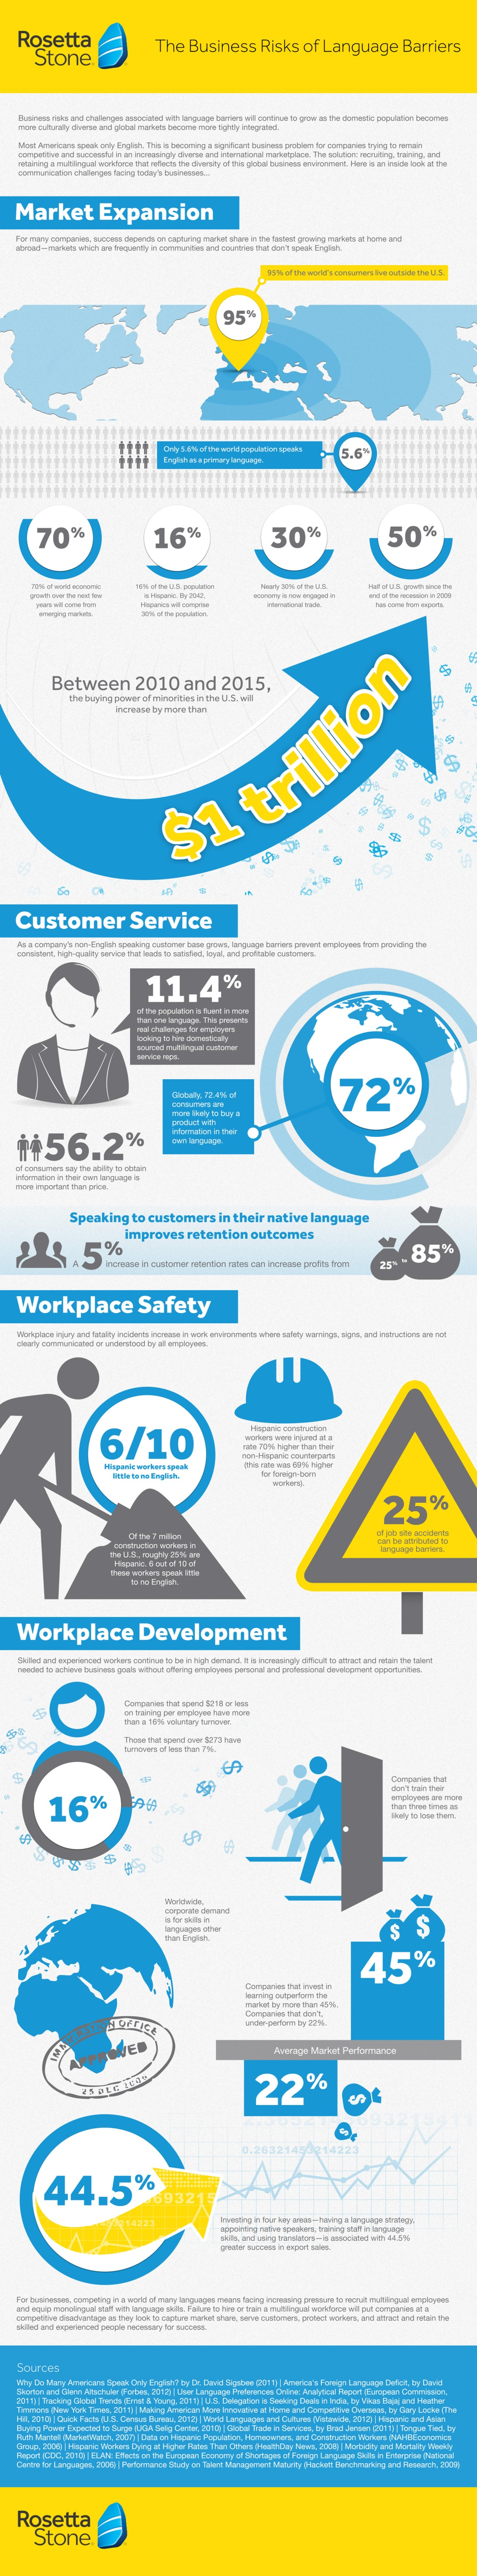 The Business Risks of Language Barriers Infographic